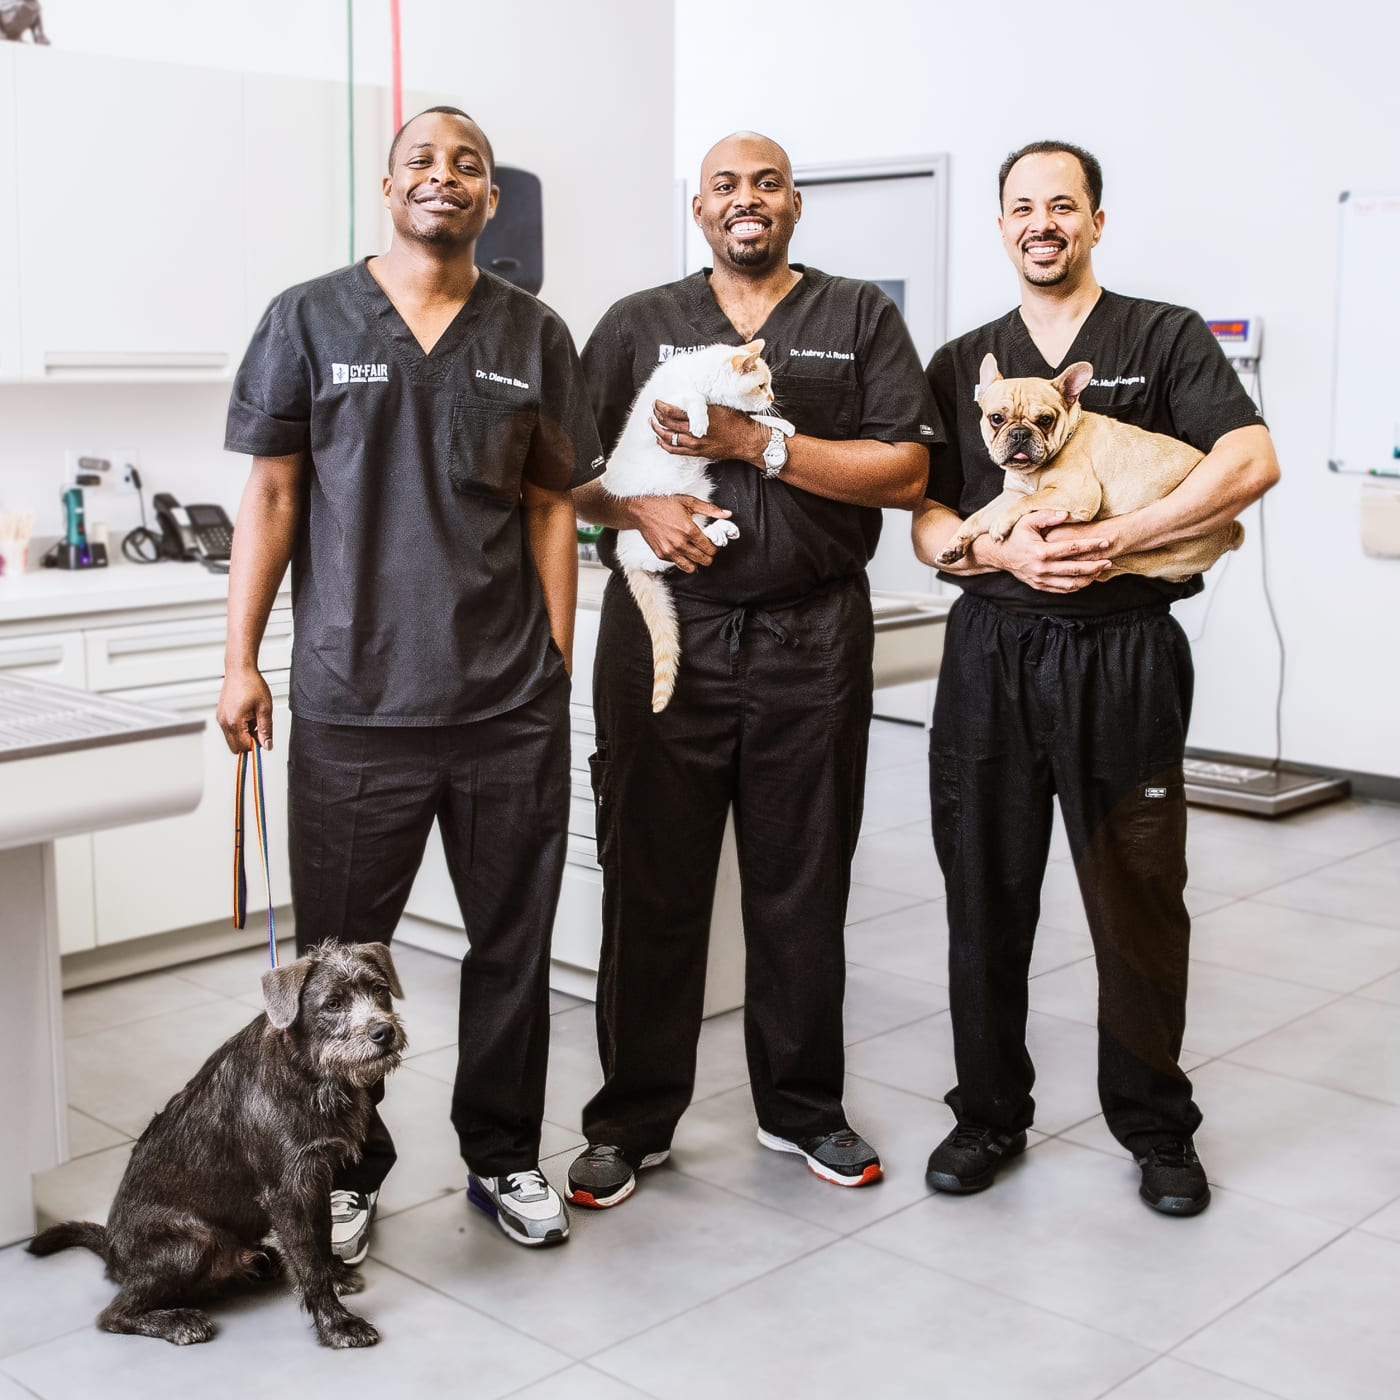 The Vet Life | Watch Full Episodes & More! - Animal Planet